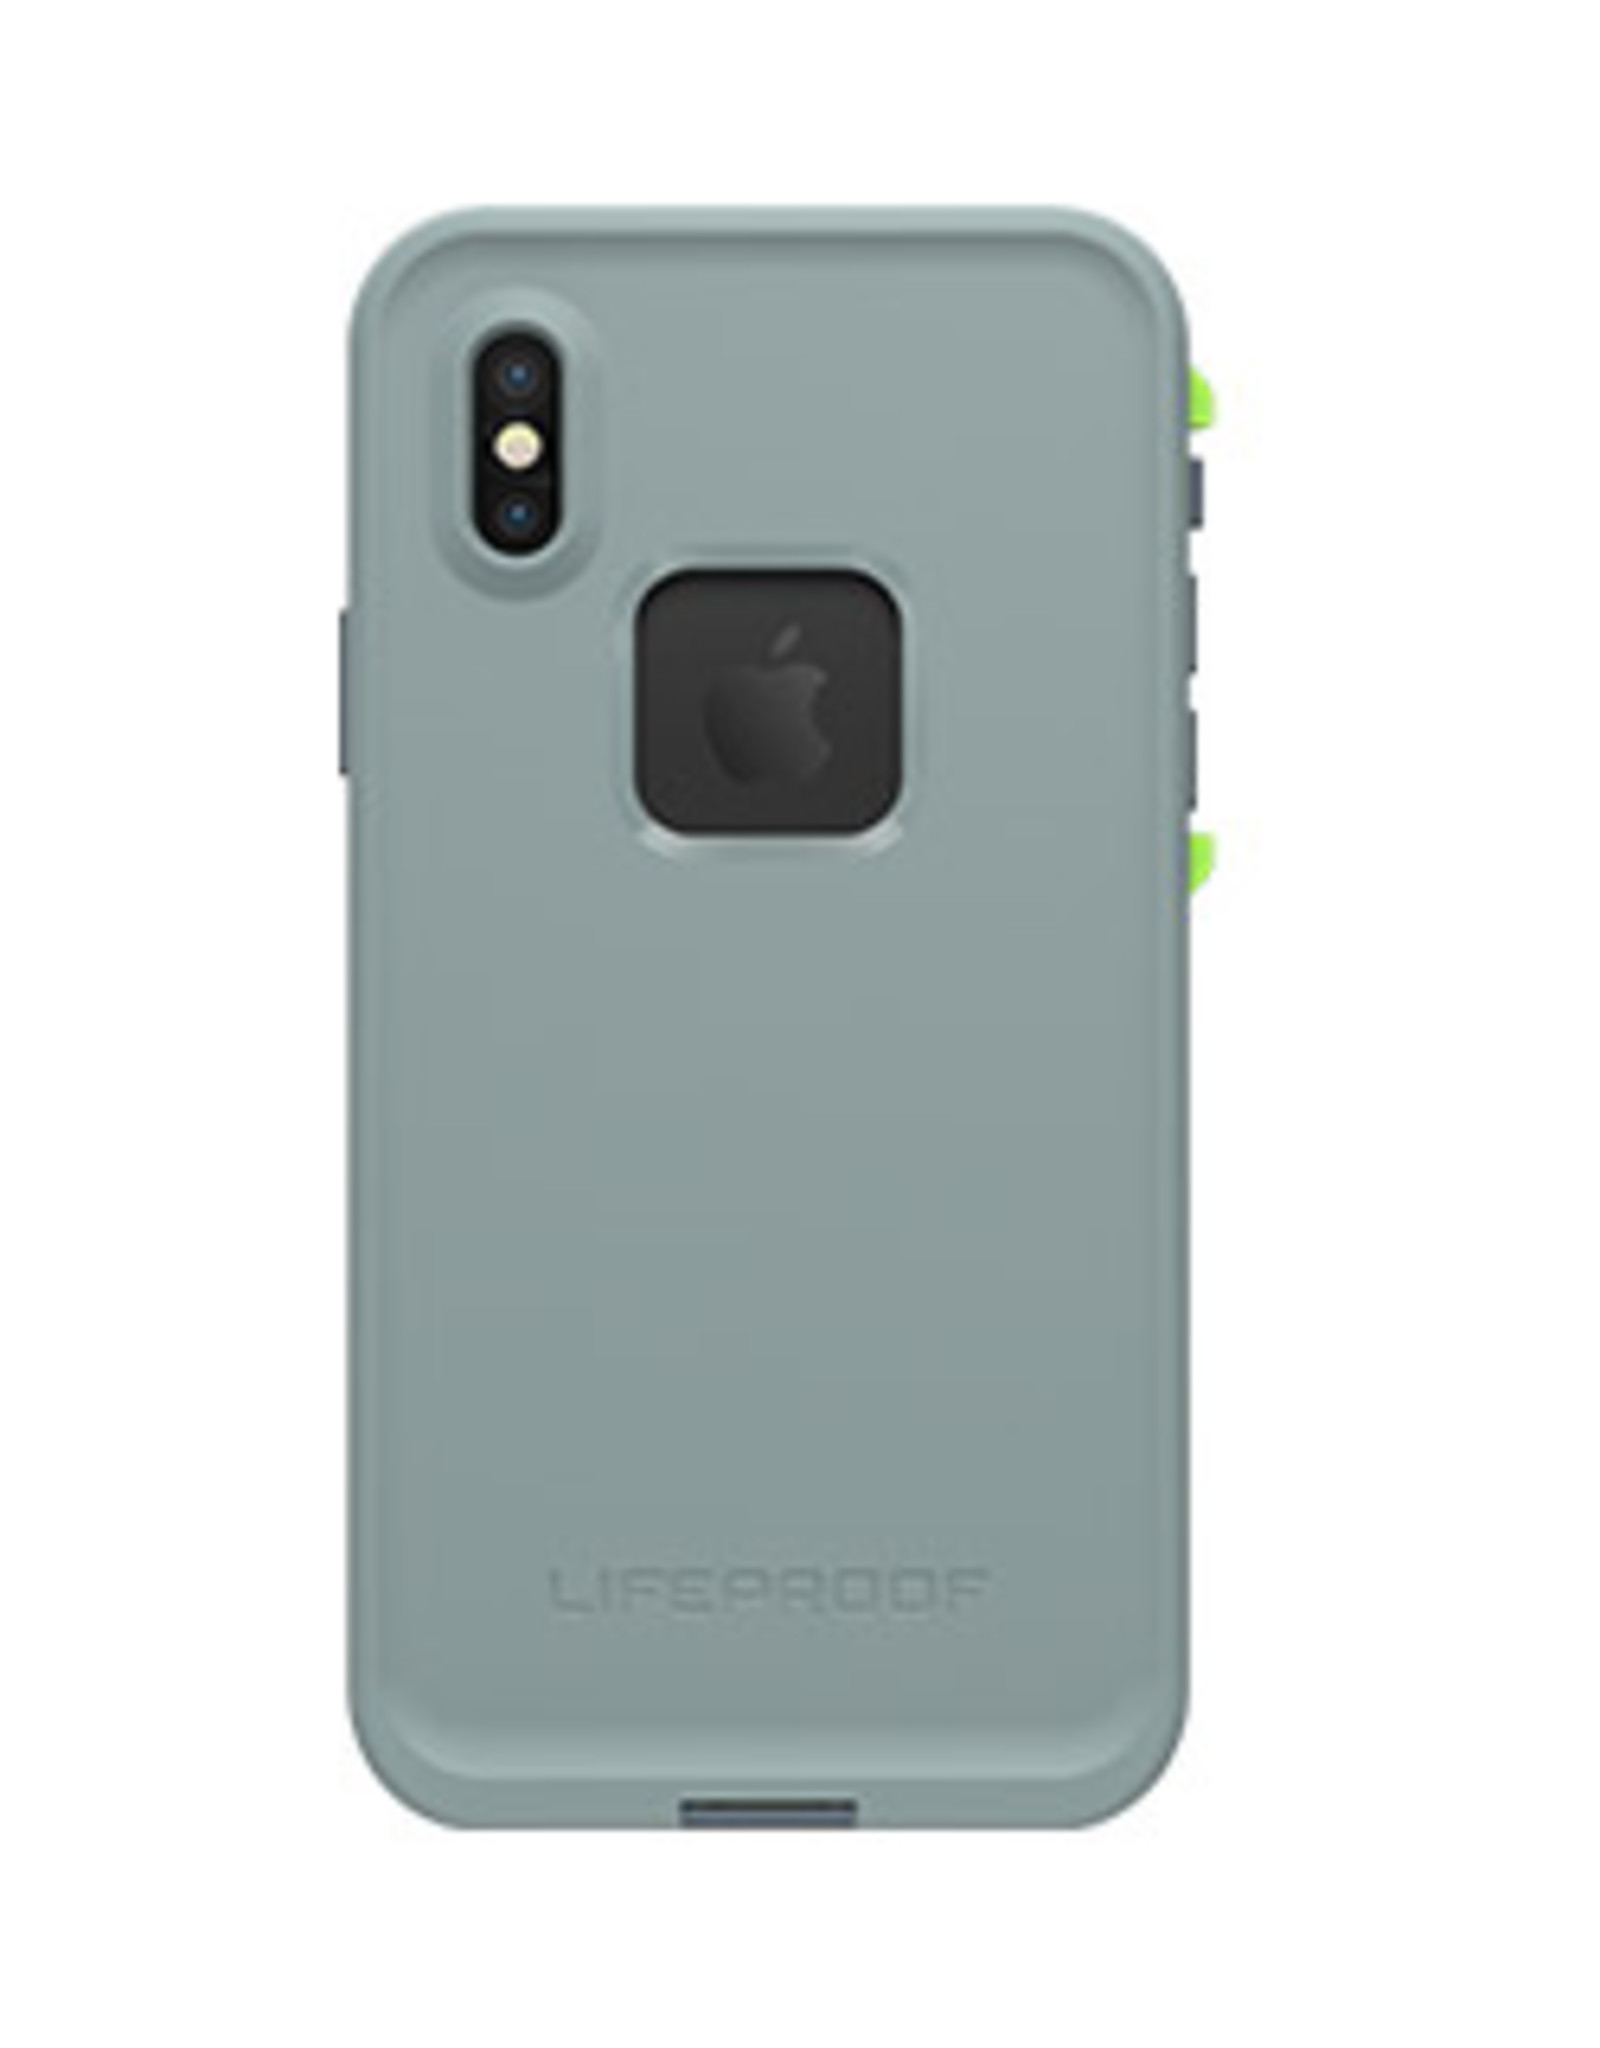 LifeProof LifeProof | iPhone X Lime/Grey (Drop In) Fre case 15-02404